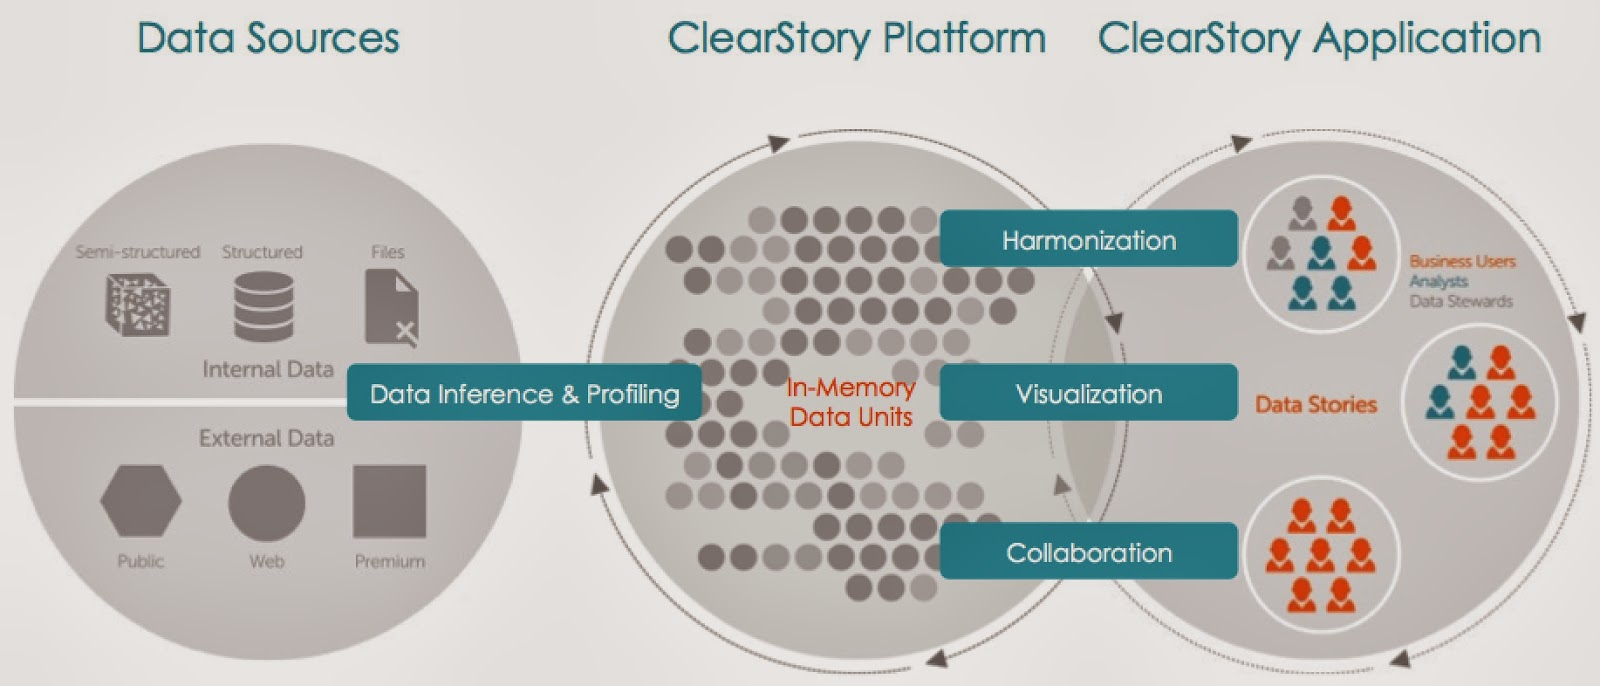 ClearStory platform